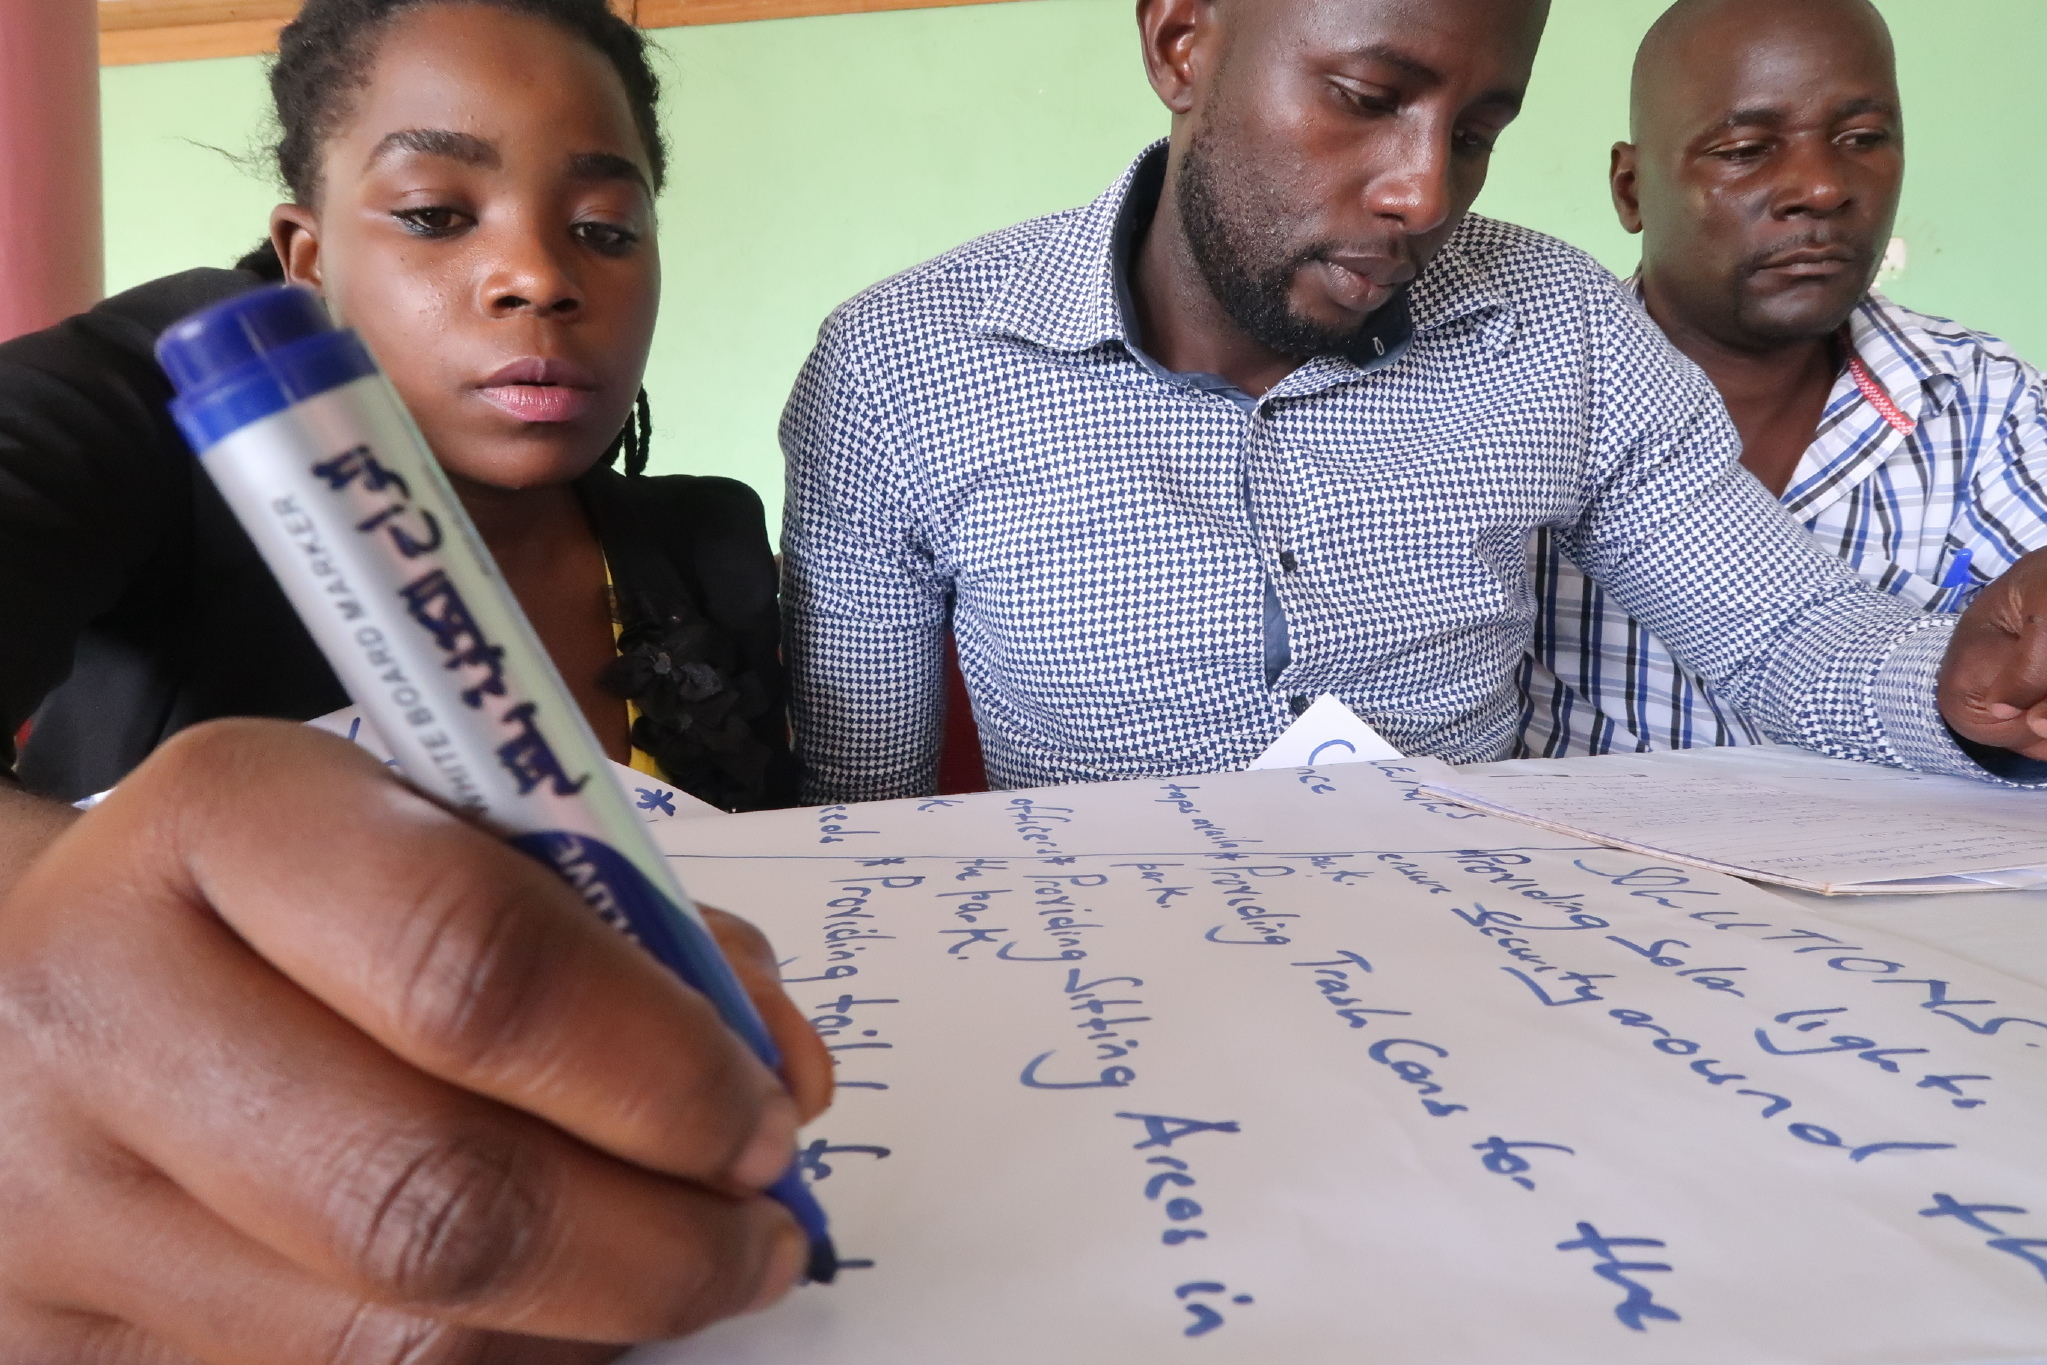 Men and women teamed up to generate ideas for Namuwongo 8th Street. Credit: UN-Habitat